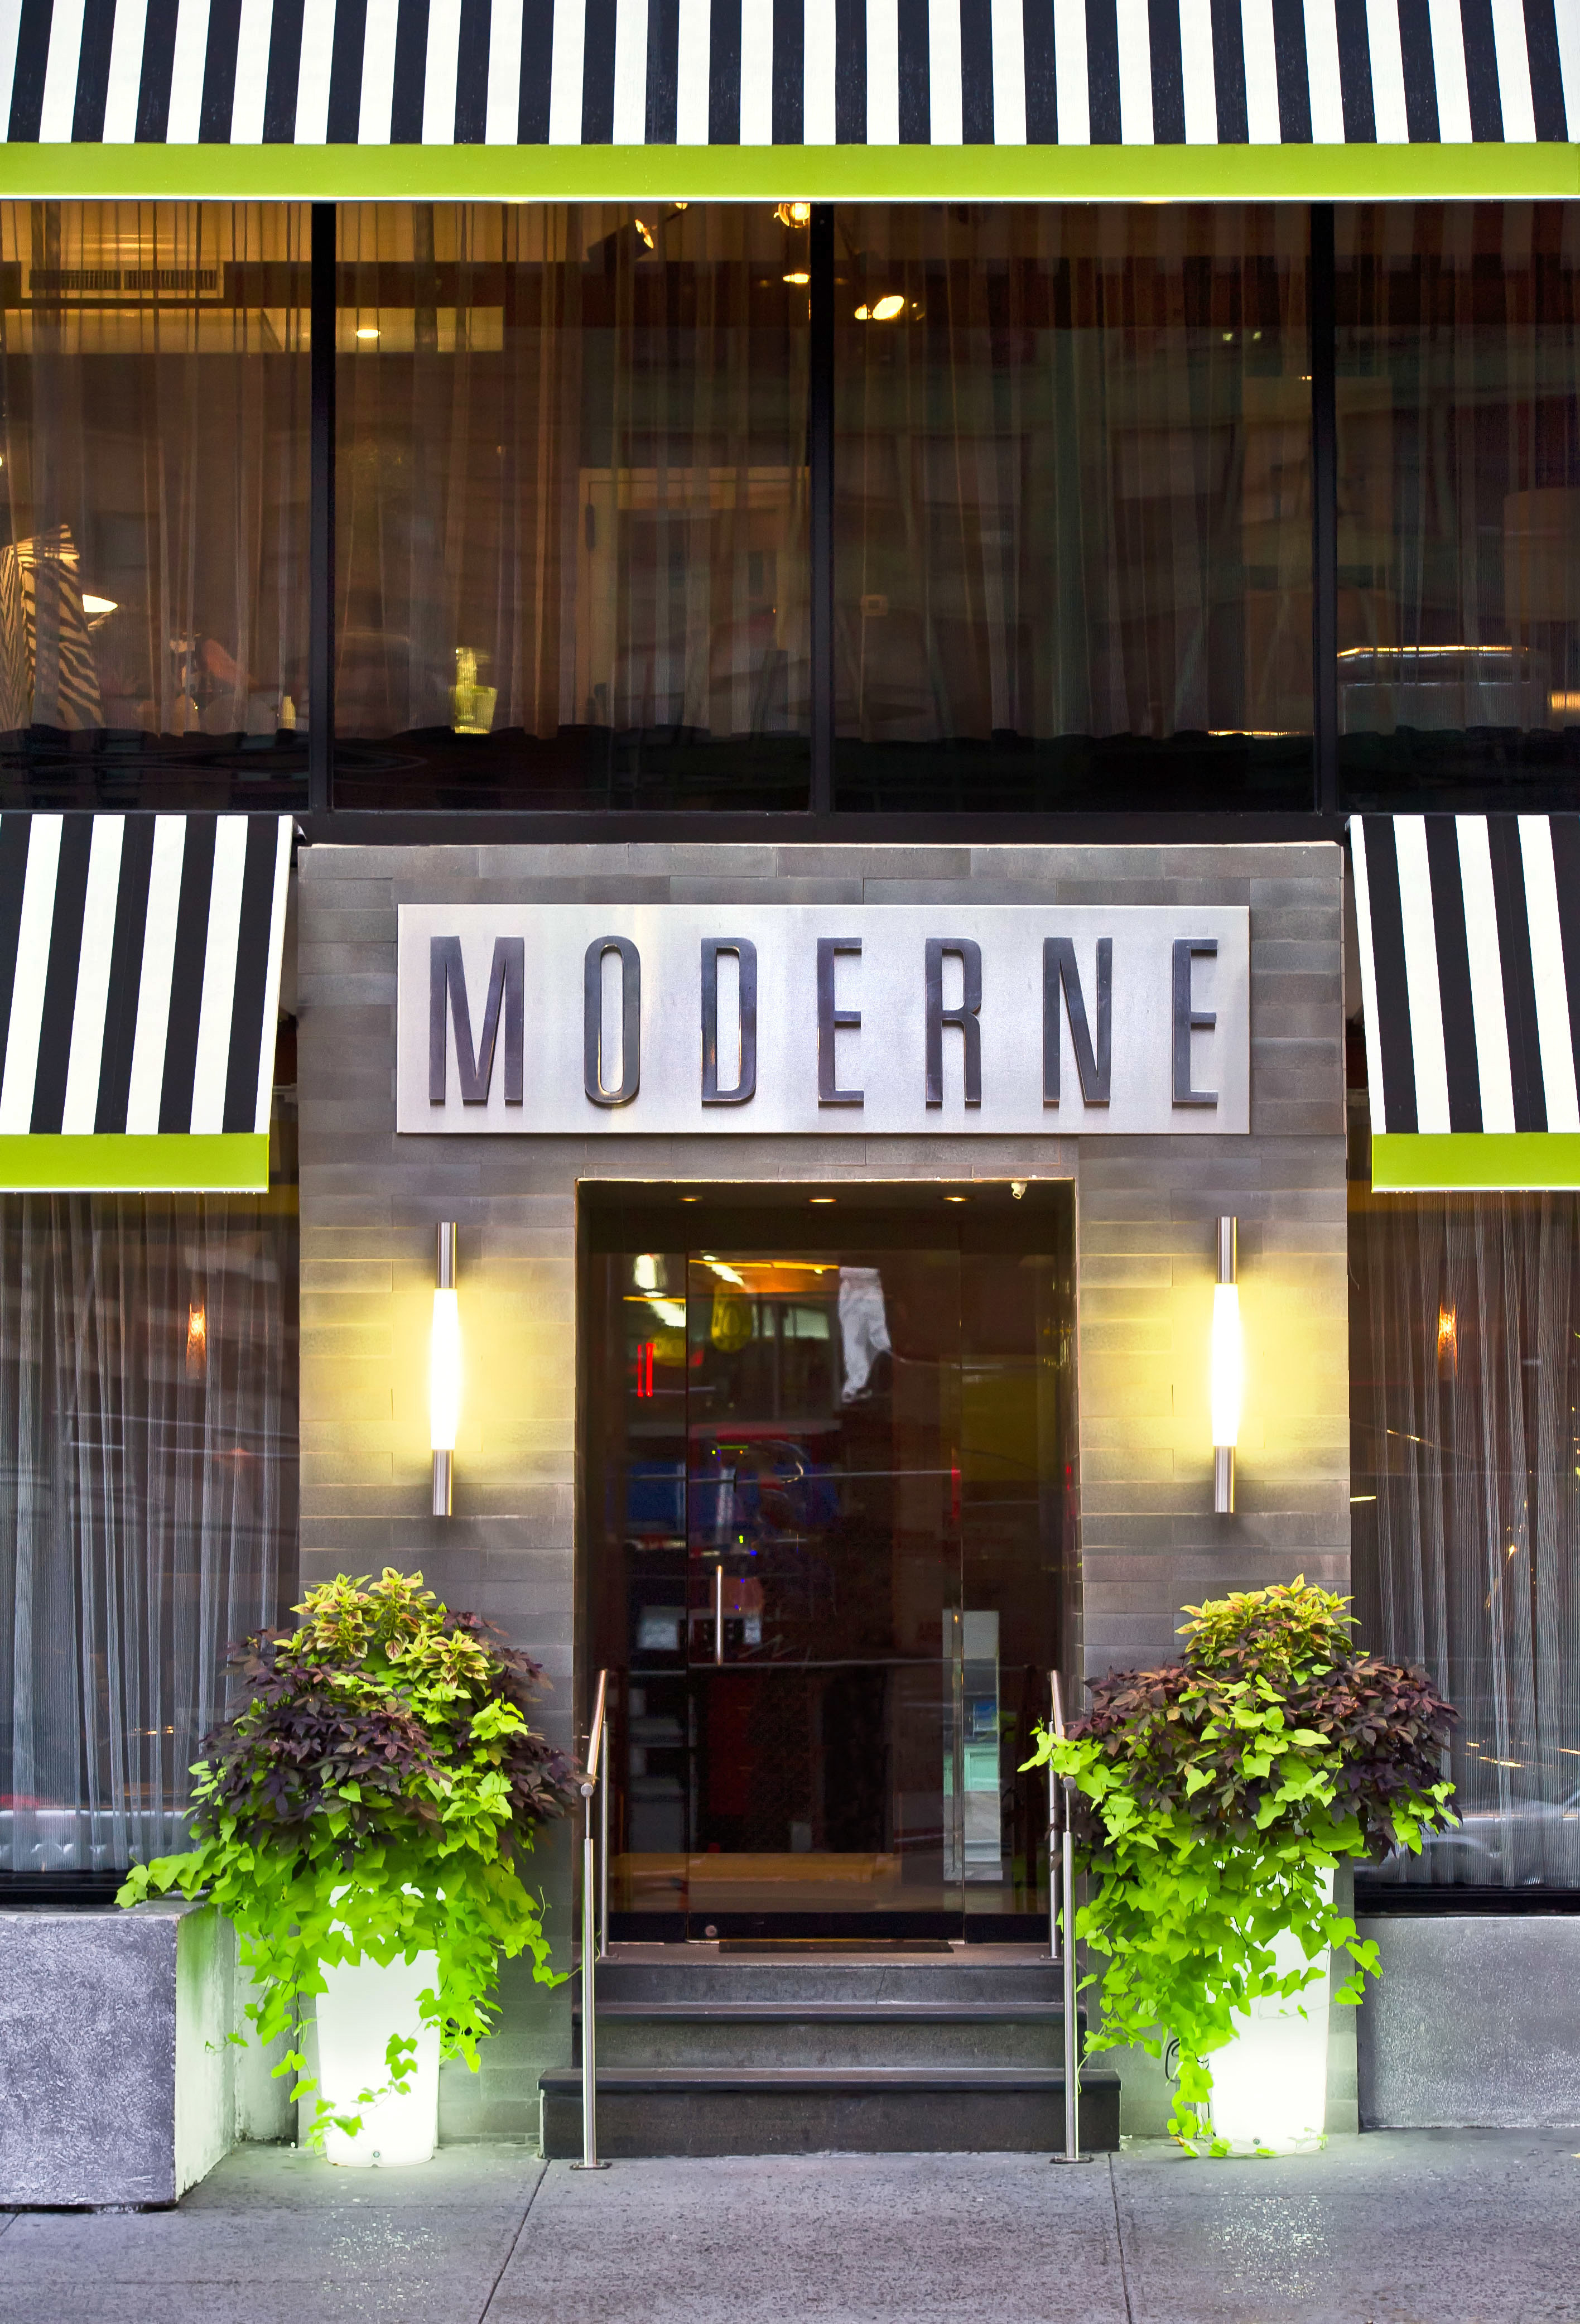 Boutique Exterior Hip Modern building road restaurant Architecture Downtown street lighting